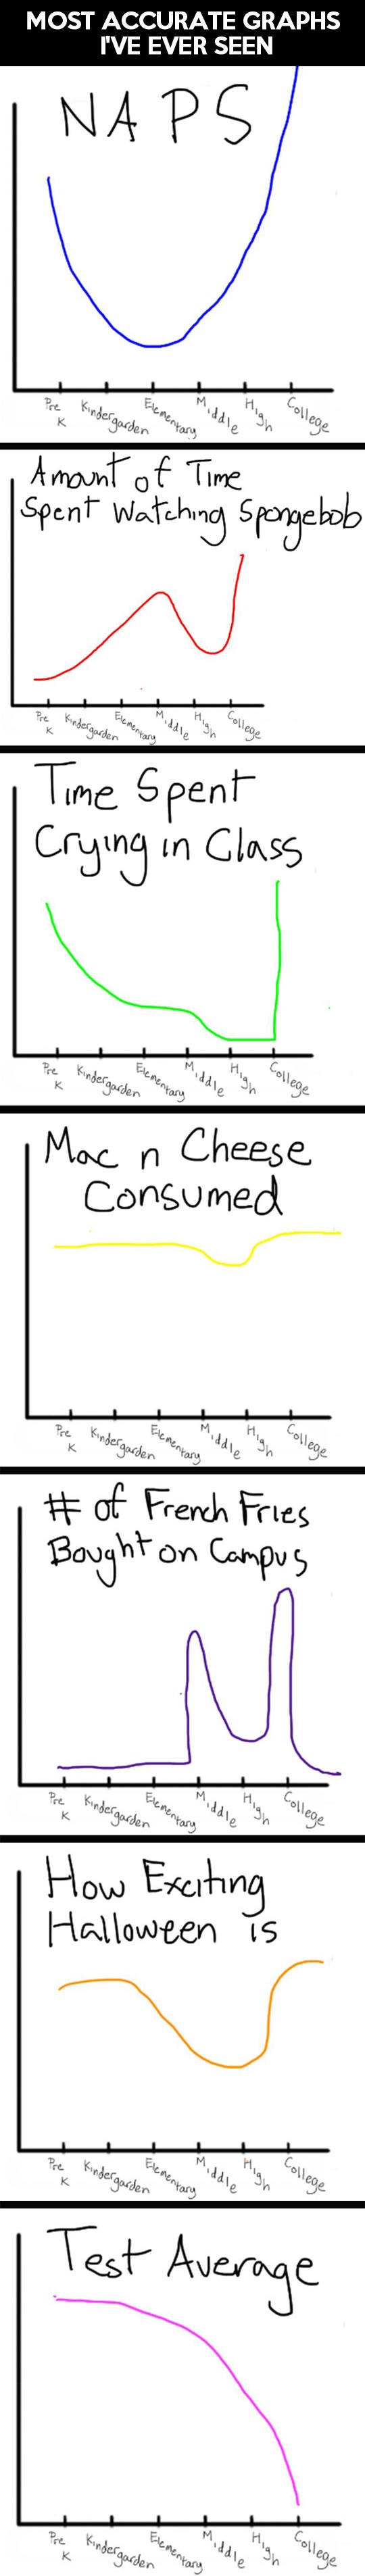 Your life summed up in this funny, amazing, little graph...